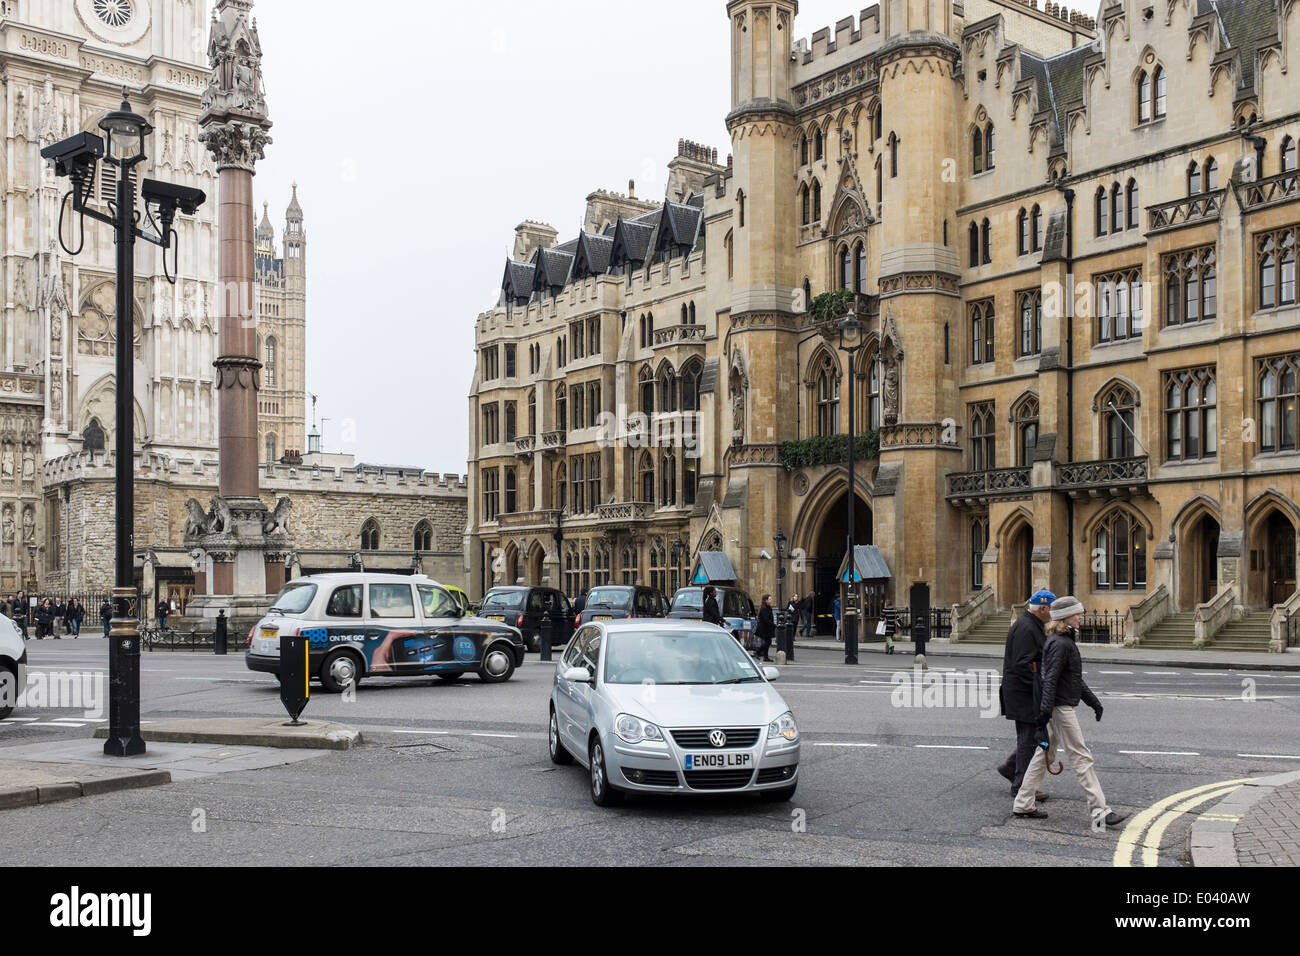 View of Westminster Abbey, Entrance to Dean's Yard and Westminster School War Memorial, London - Stock Image